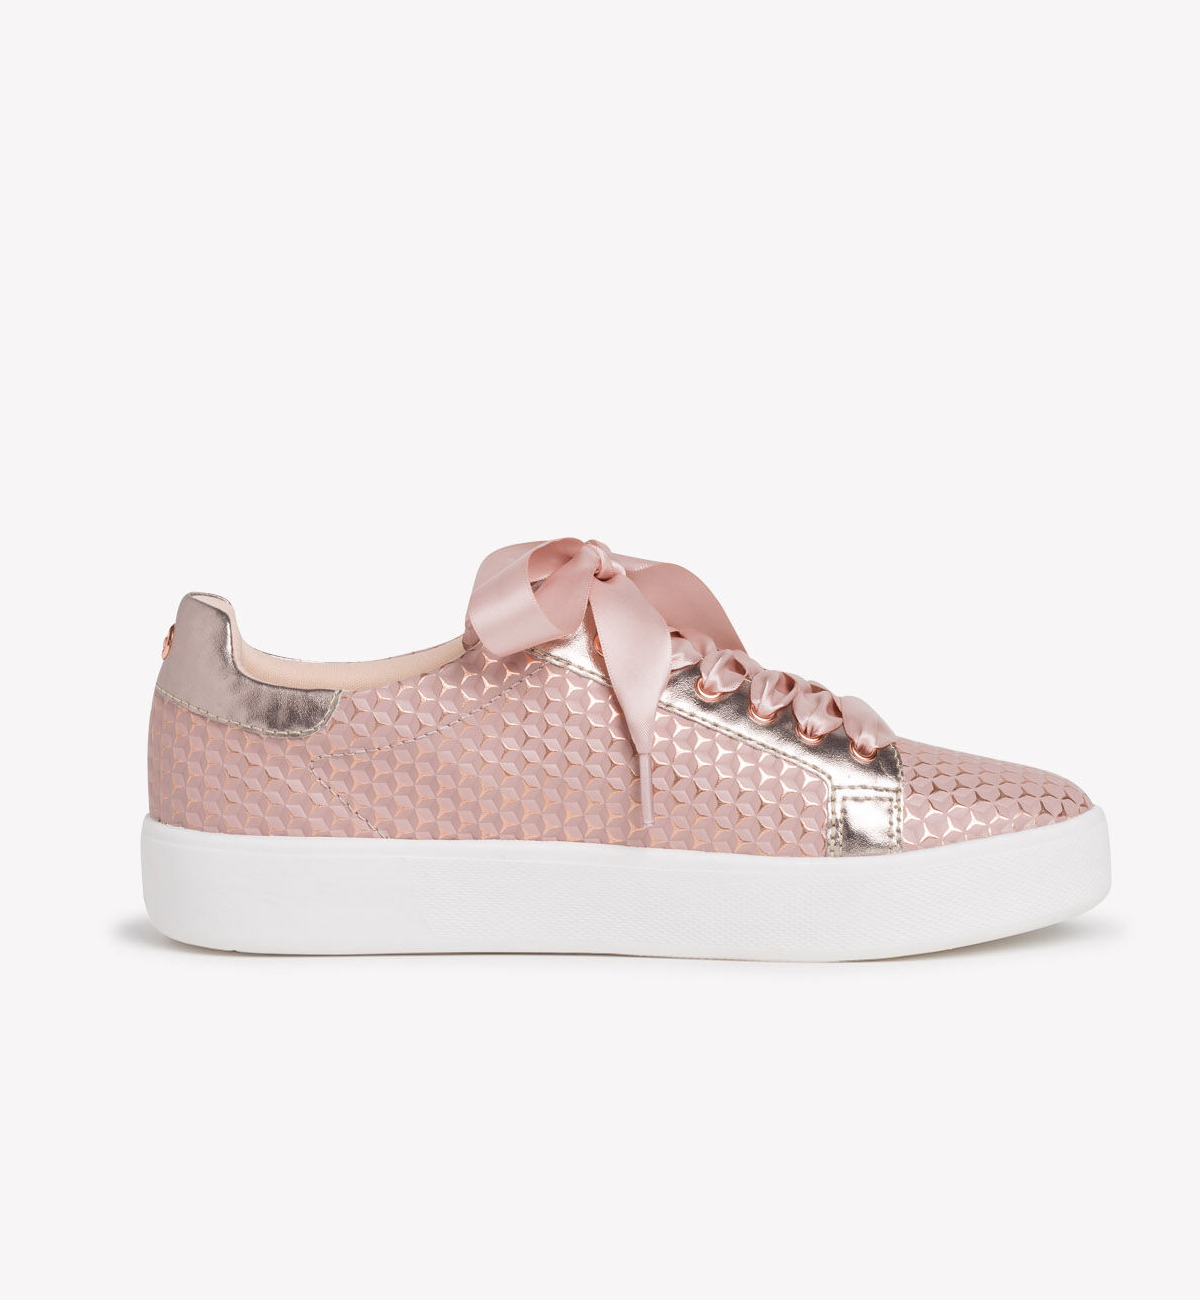 Tamaris-Womens-Textured-Lace-Up-Shoe---Rose-Structure